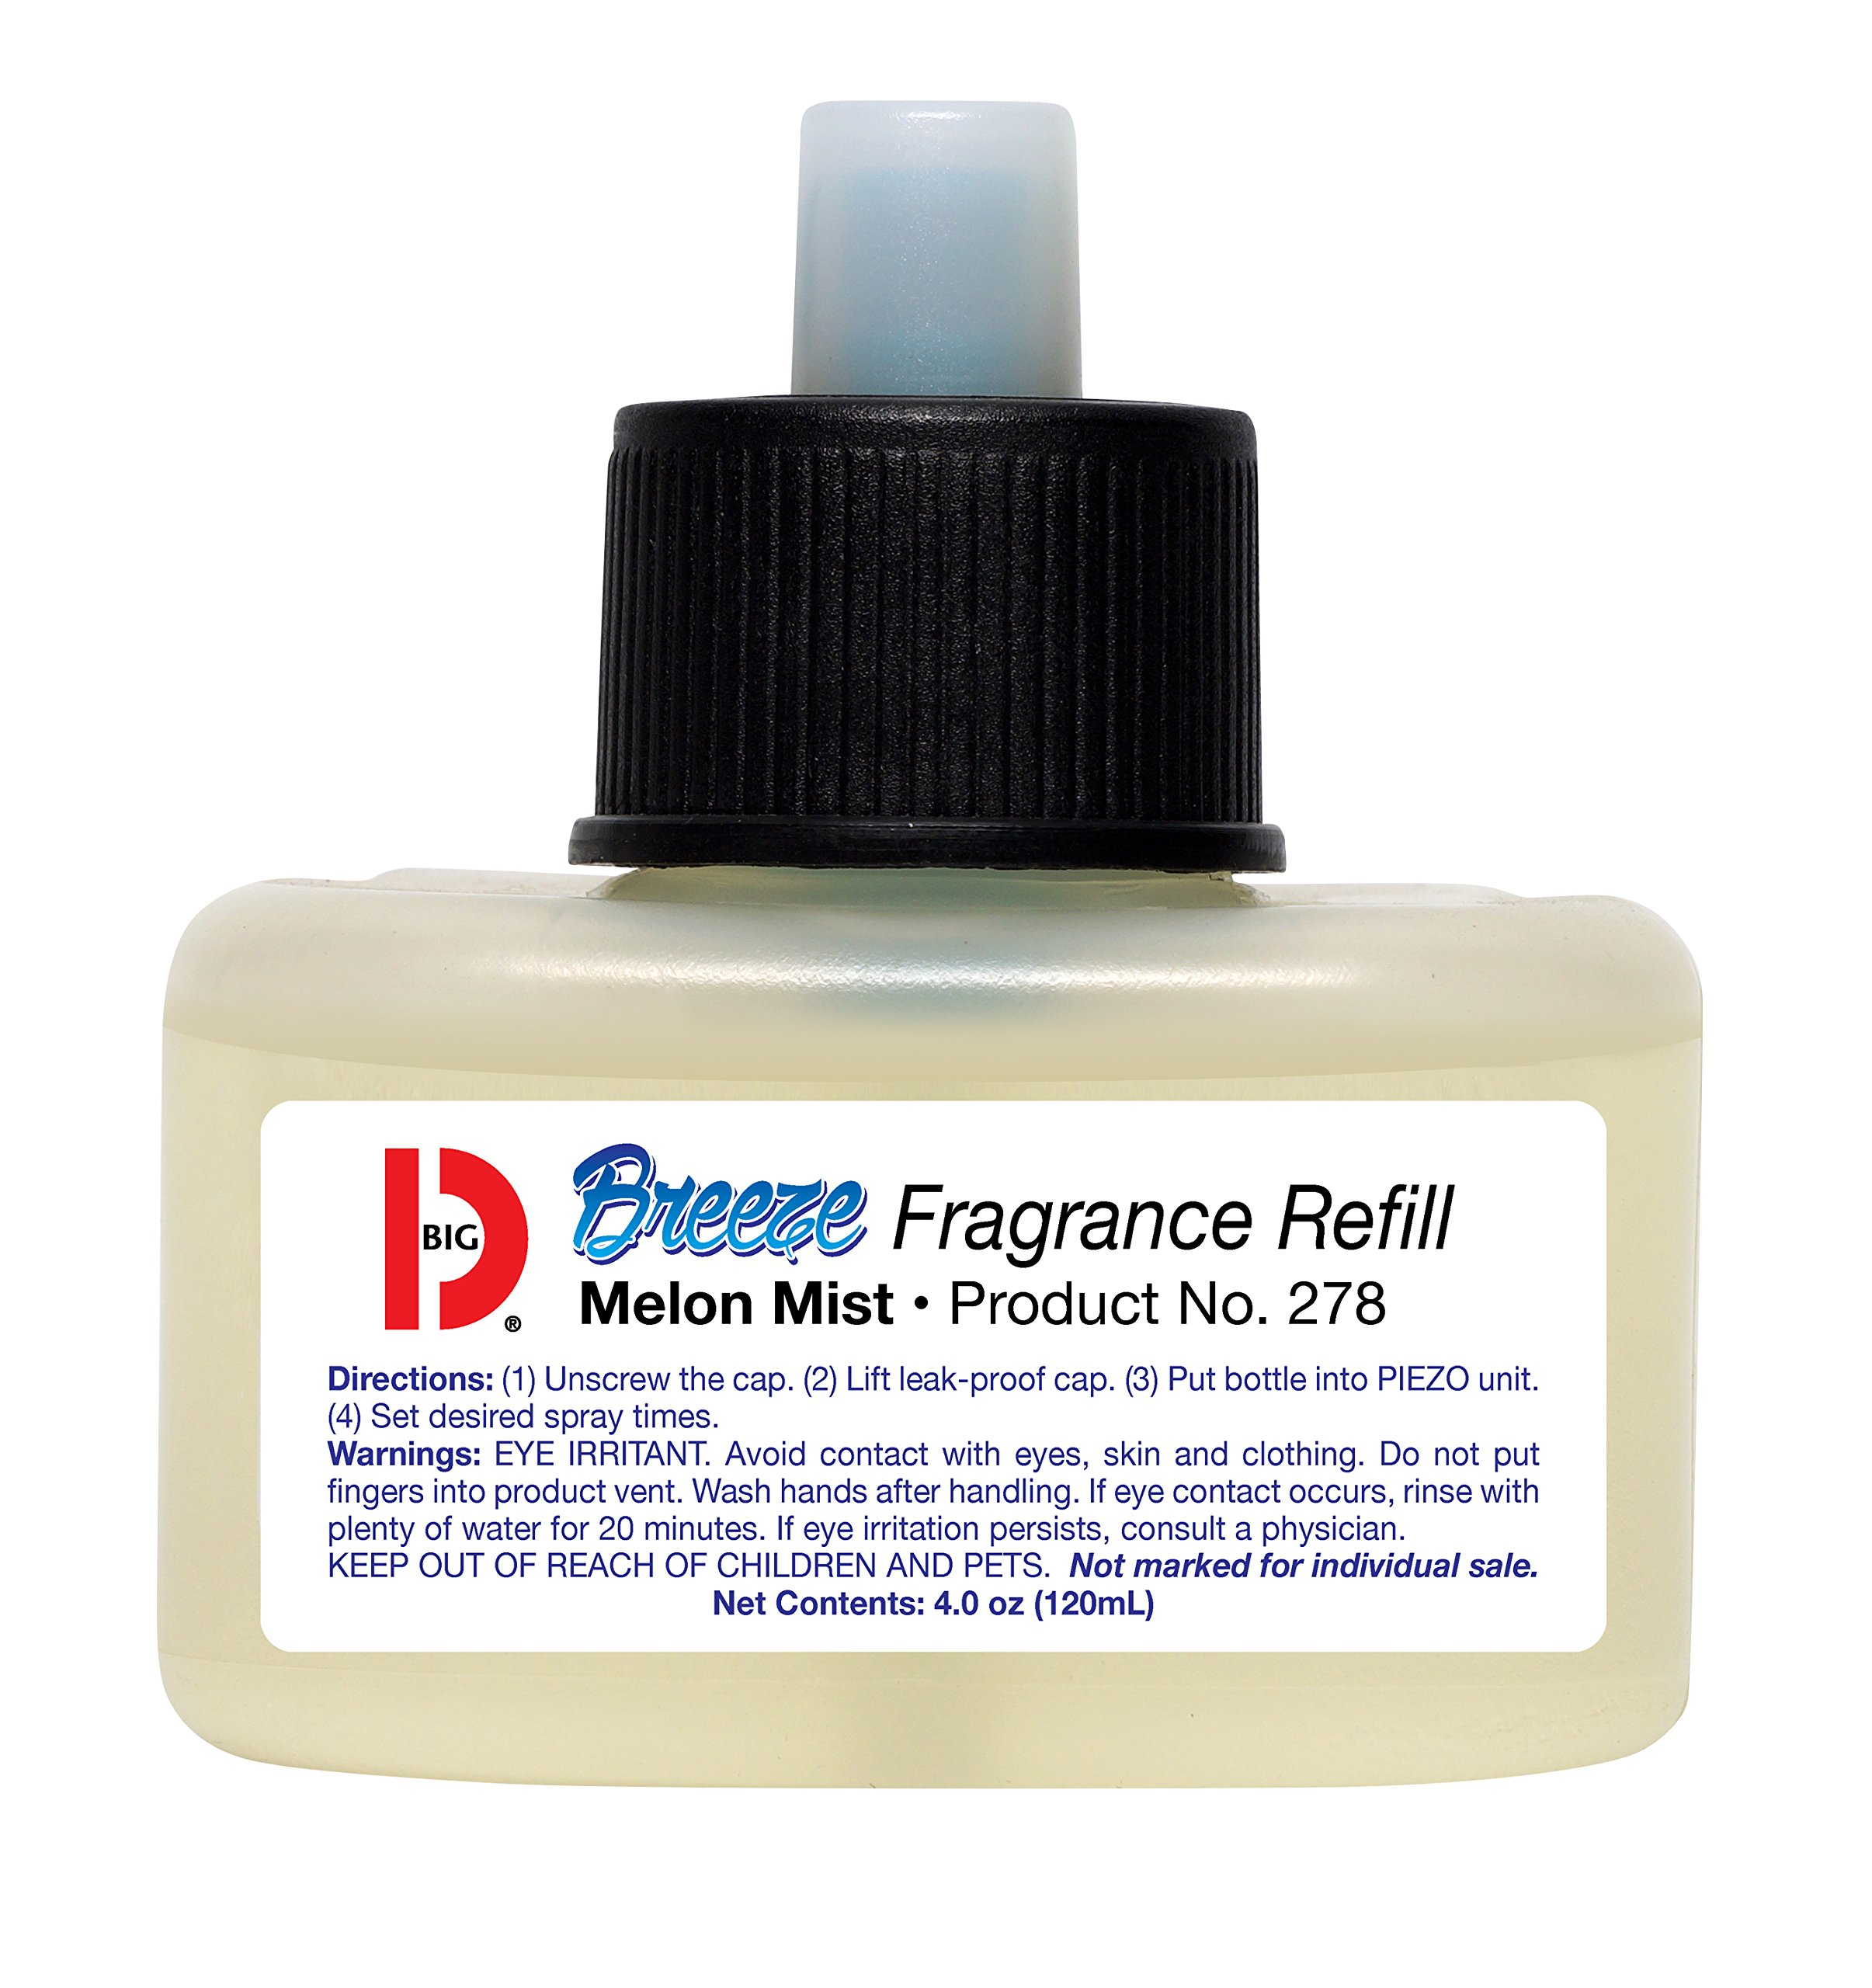 Big D Fragrance Refill for Breeze Dispenser, Melon Mist Fragrance Automatic Air Freshener with Piezo Technology - Ideal for restrooms, offices, schools, restaurants, hotels, stores